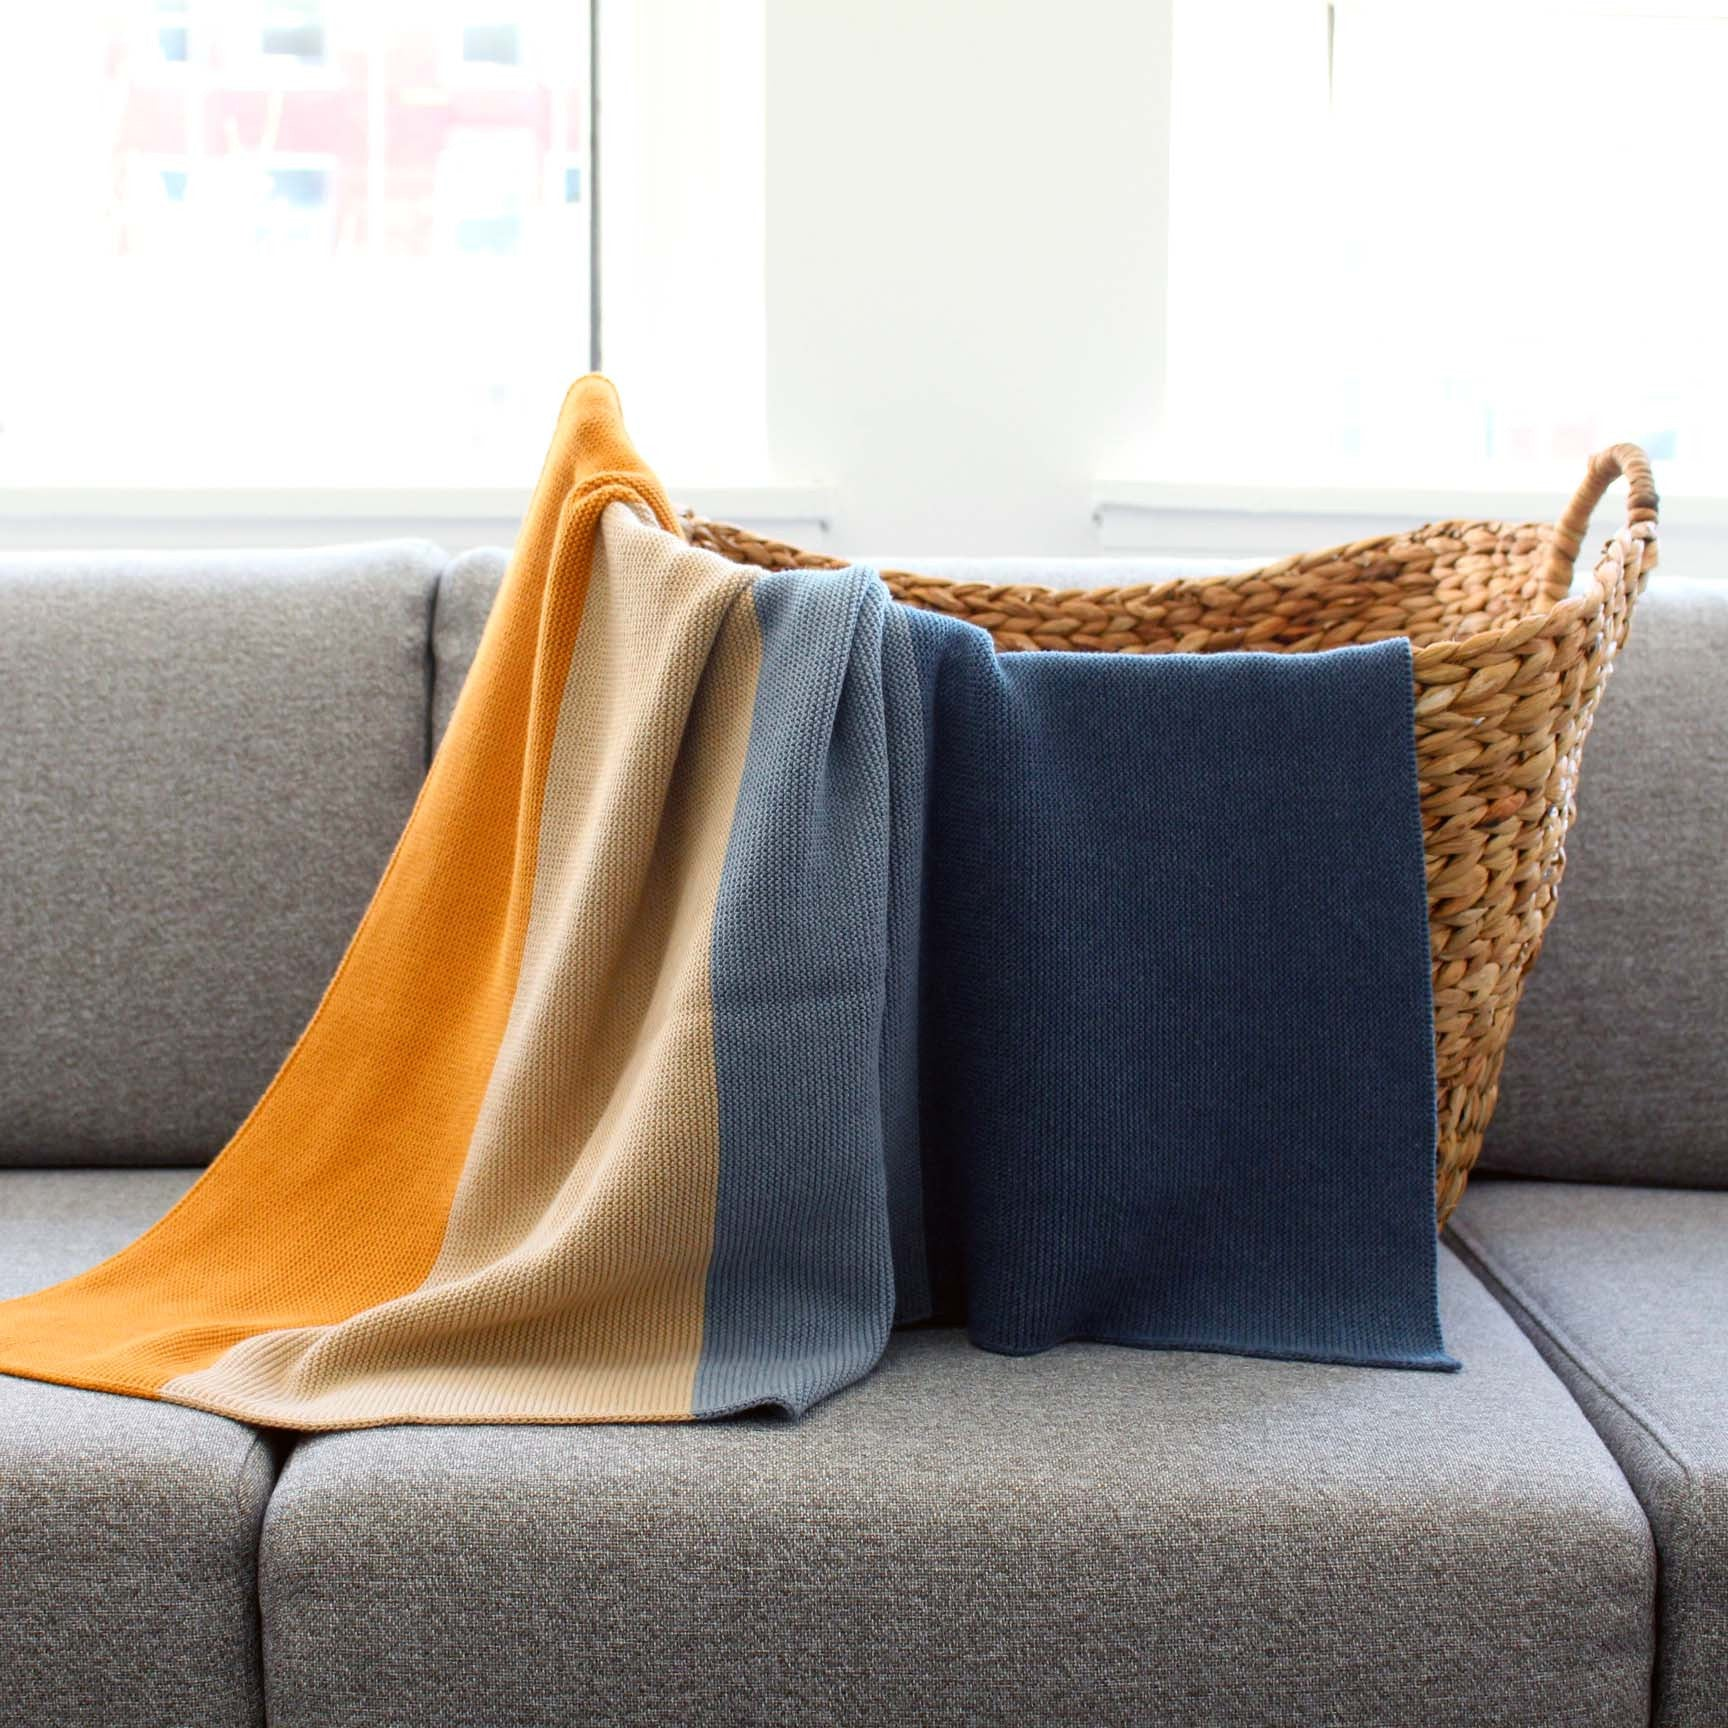 koko's nest | Modern Heirloom baby blanket WELD